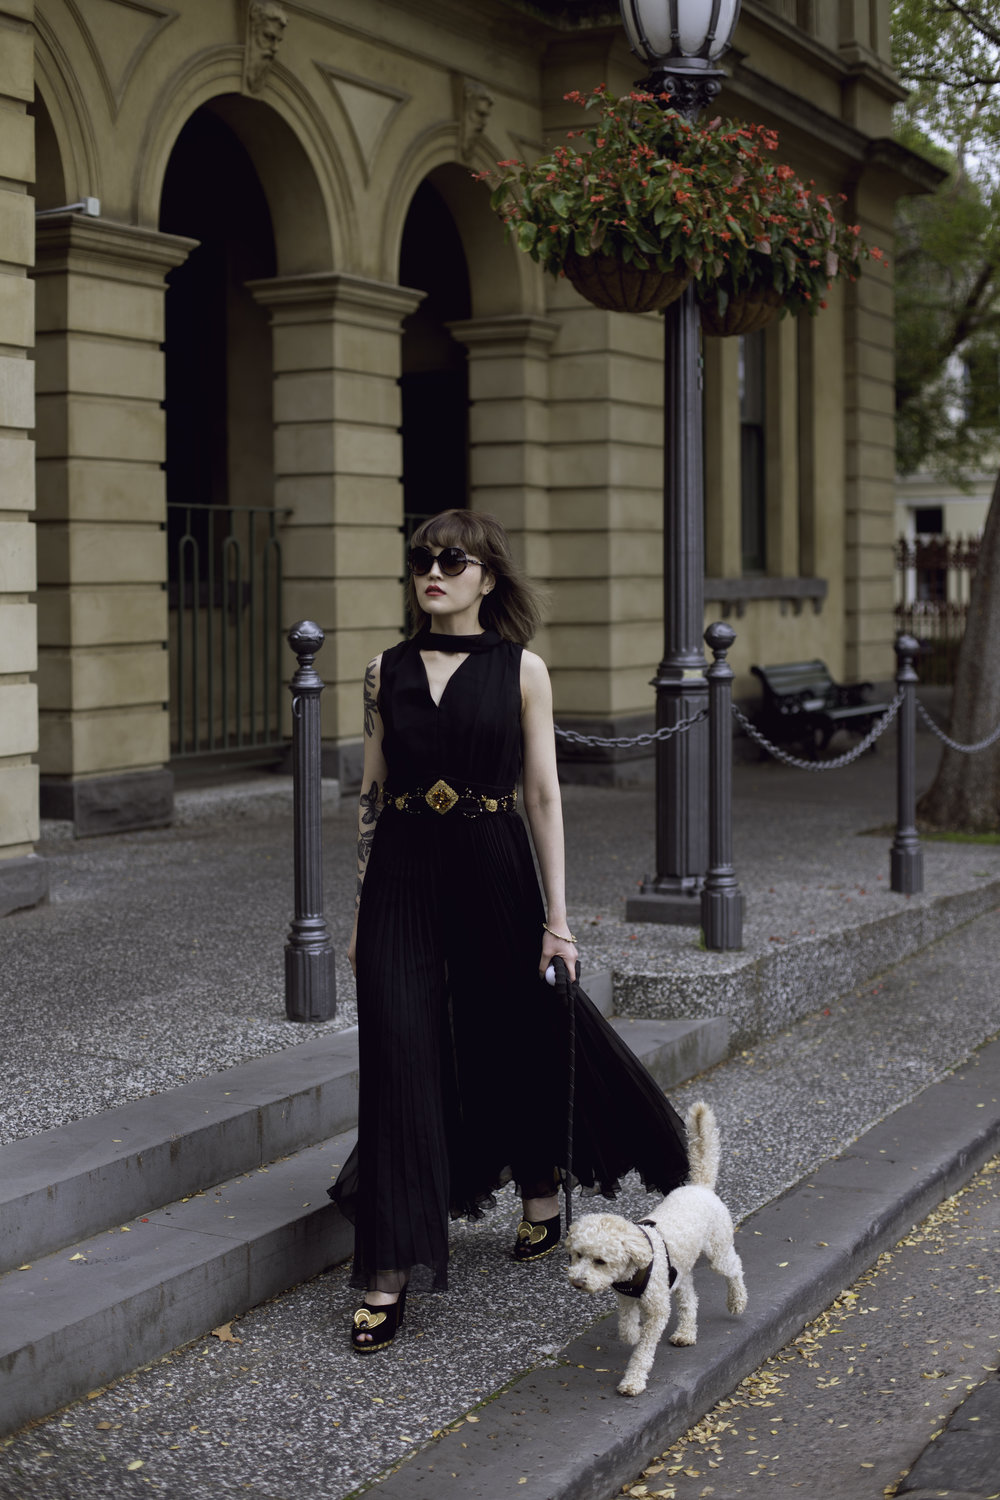 Victoria Avenue  Dress: Enjoy it Vintage // @enjoyitvintage  Jewellery: Emgee // @emgee_ig  Shoes: Marni // @marni  Glasses: Amorir // @amorireyewear  Dog:  Buddy // @mr_buddy_thetoypoodle